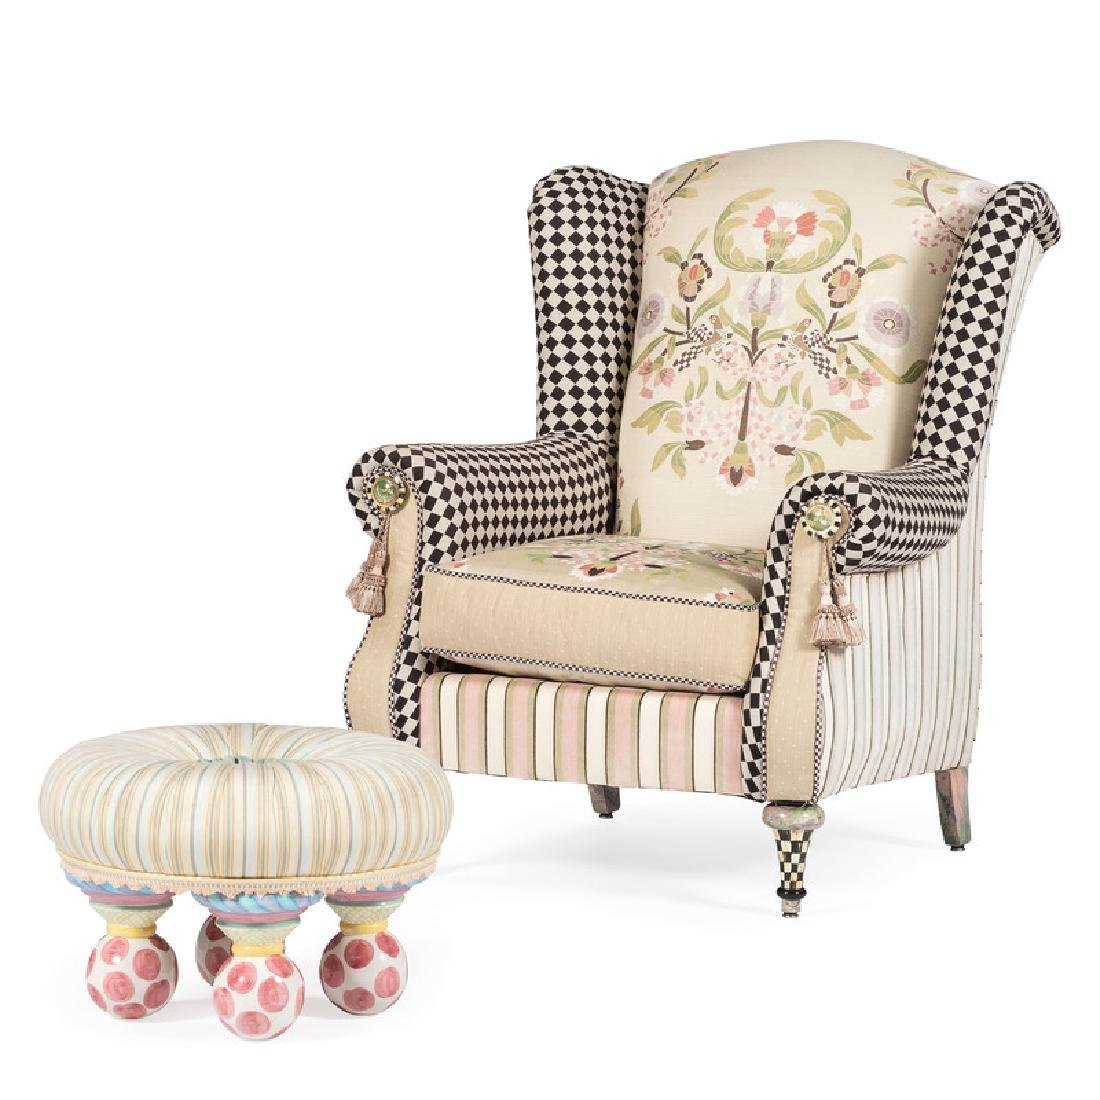 Mackenzie-Childs Upholstered Armchair and Ottoman